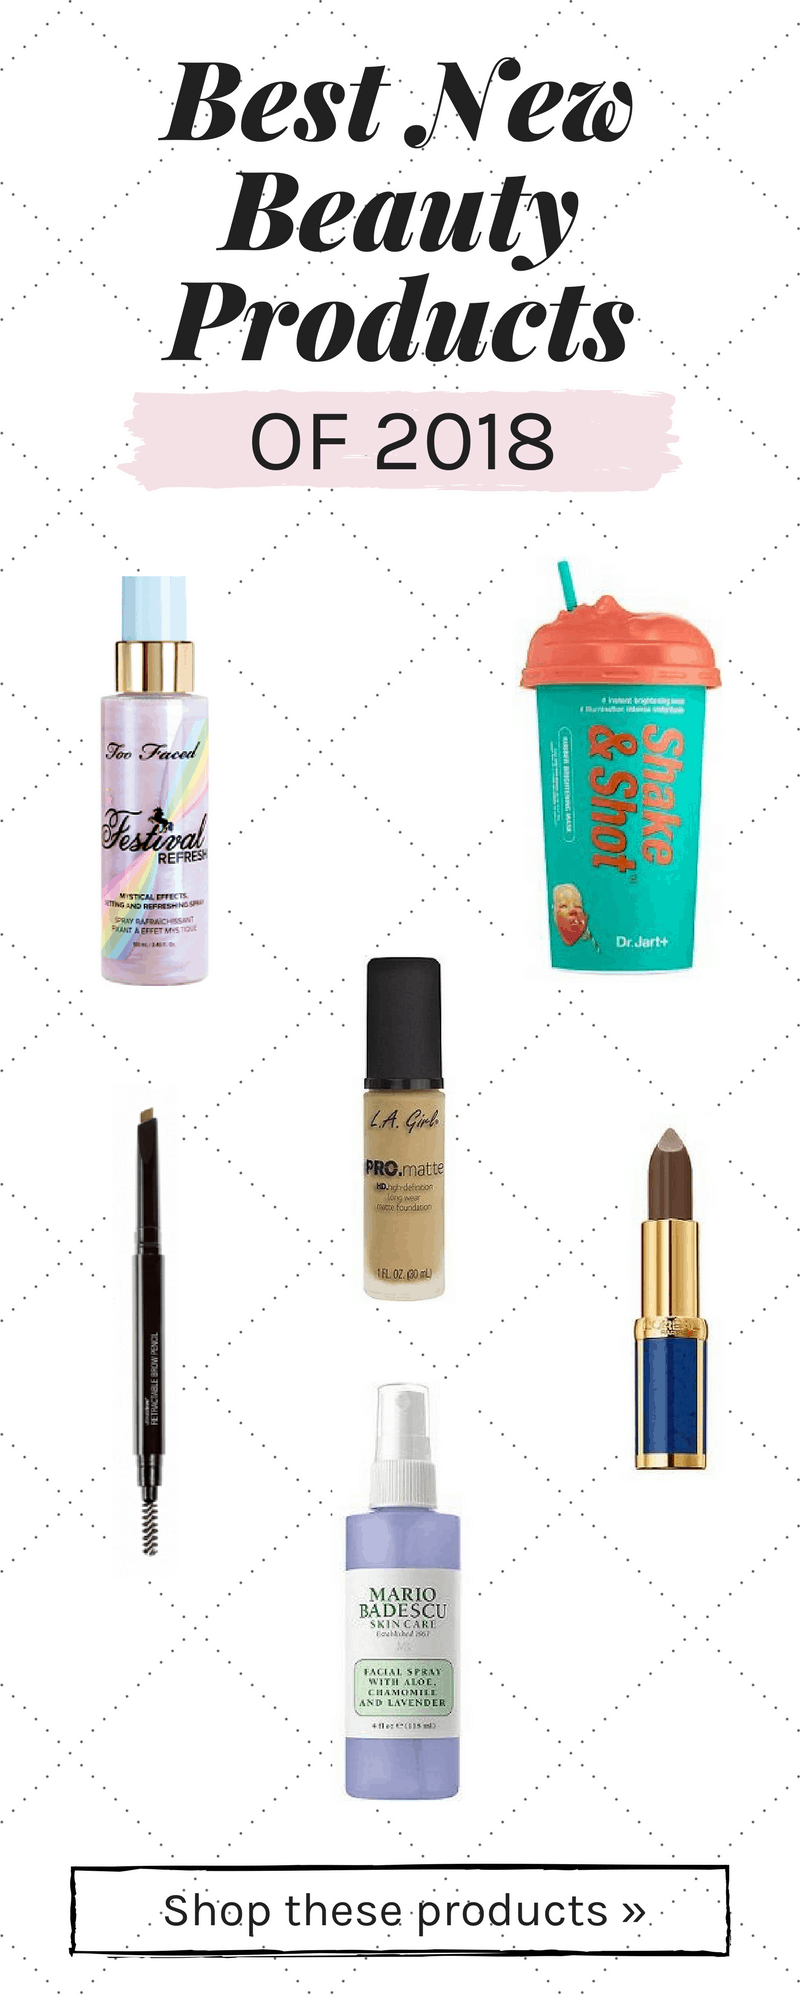 Best new beauty products of 2018 so far